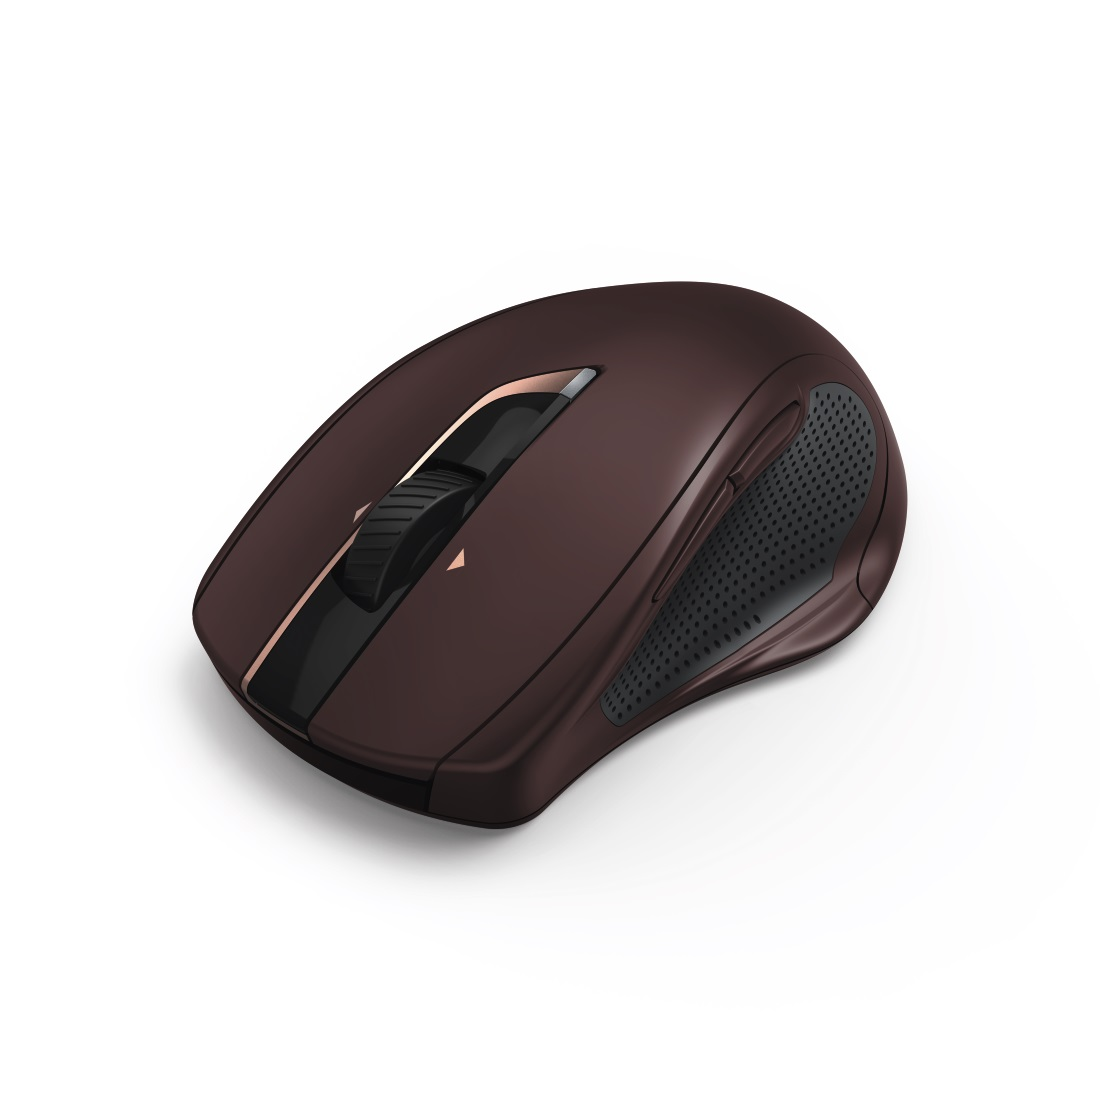 HAMA MW-800 7-Button Laser Wireless Mouse Auto-dpi burgundy